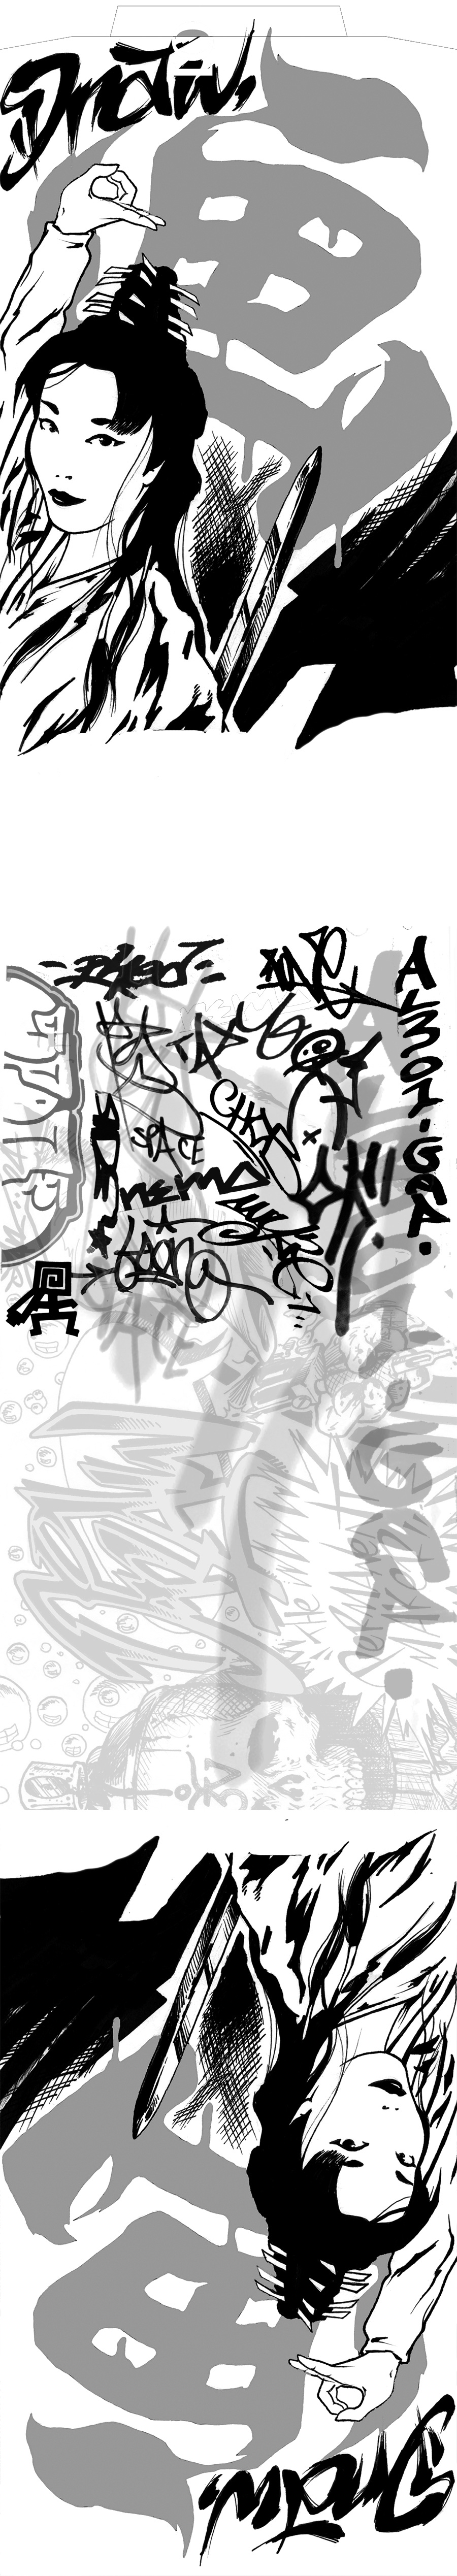 GRAFFITI 1 RETRO